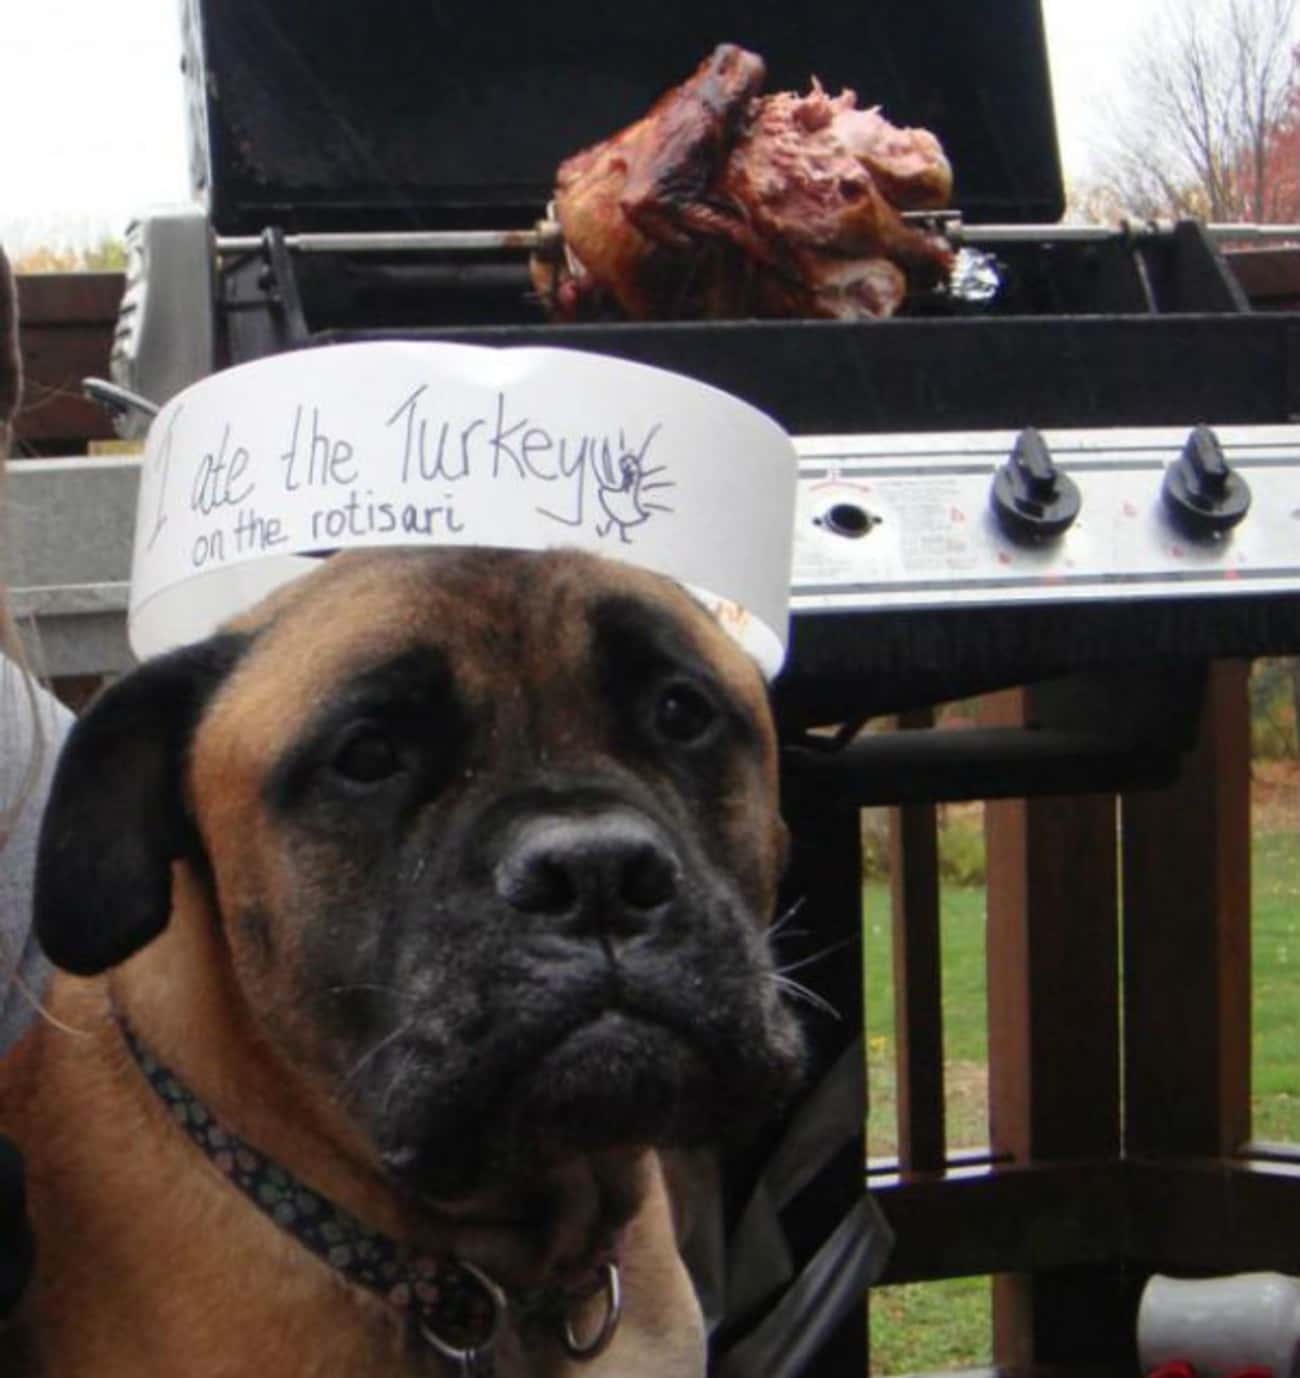 This Rotisserie-Robbing Wild M is listed (or ranked) 3 on the list 11 Dogs Who Ruined Thanksgiving